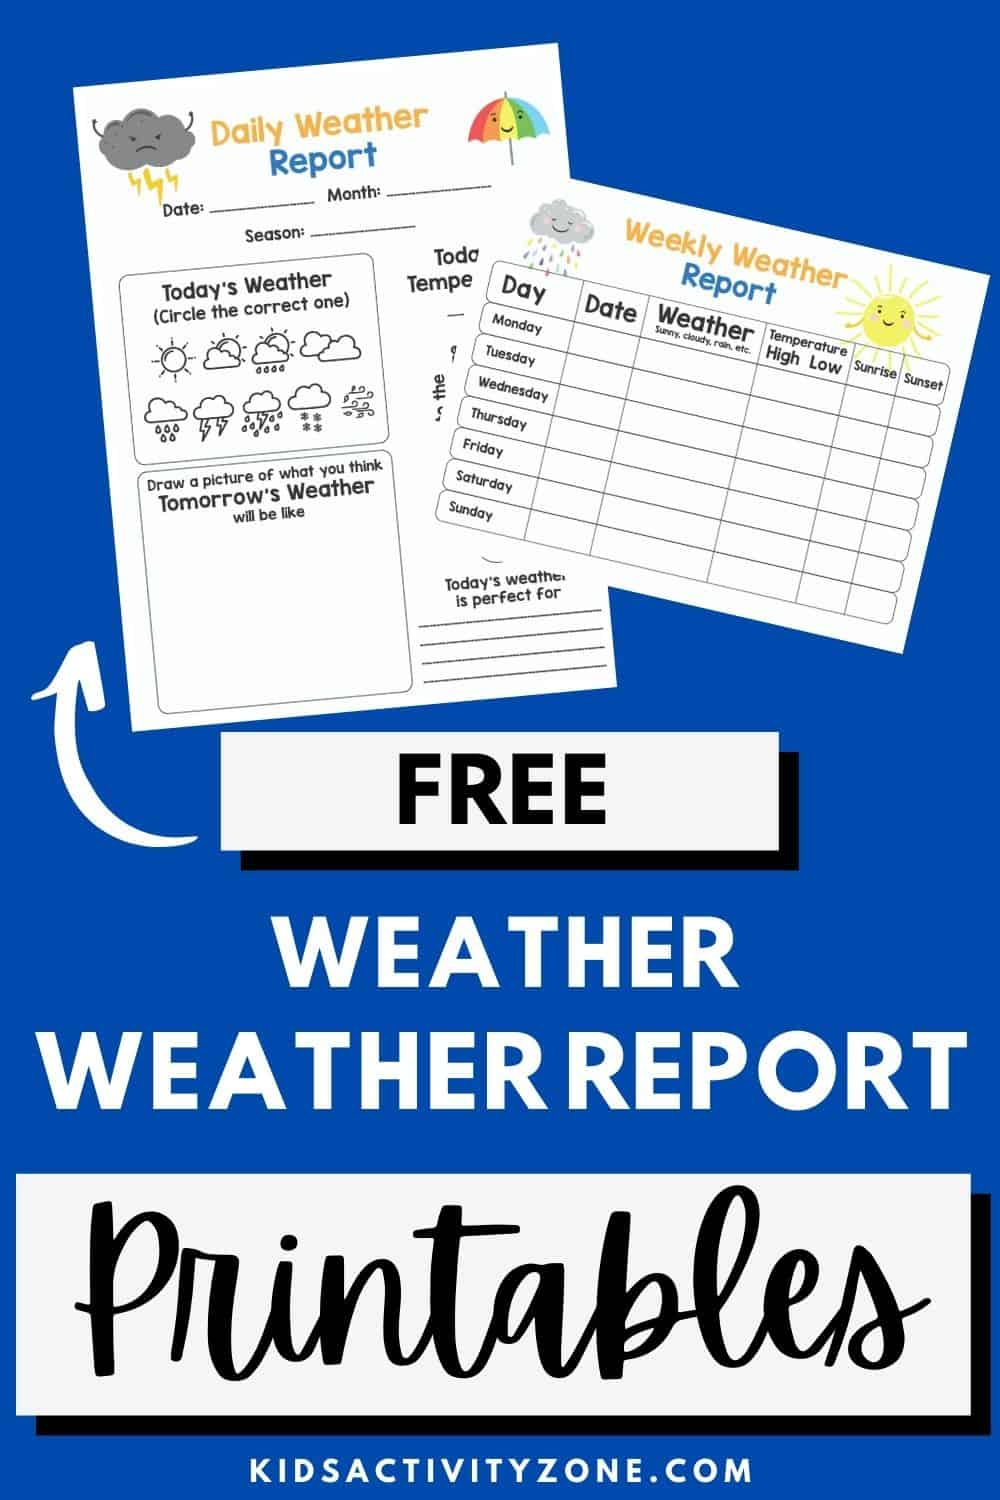 Free Daily and Weekly Weather Journal Printable perfect for elementary students learning about the weather. If you have a weather unit coming up you want this printable where kids can record today's weather plus predict tomorrow's.